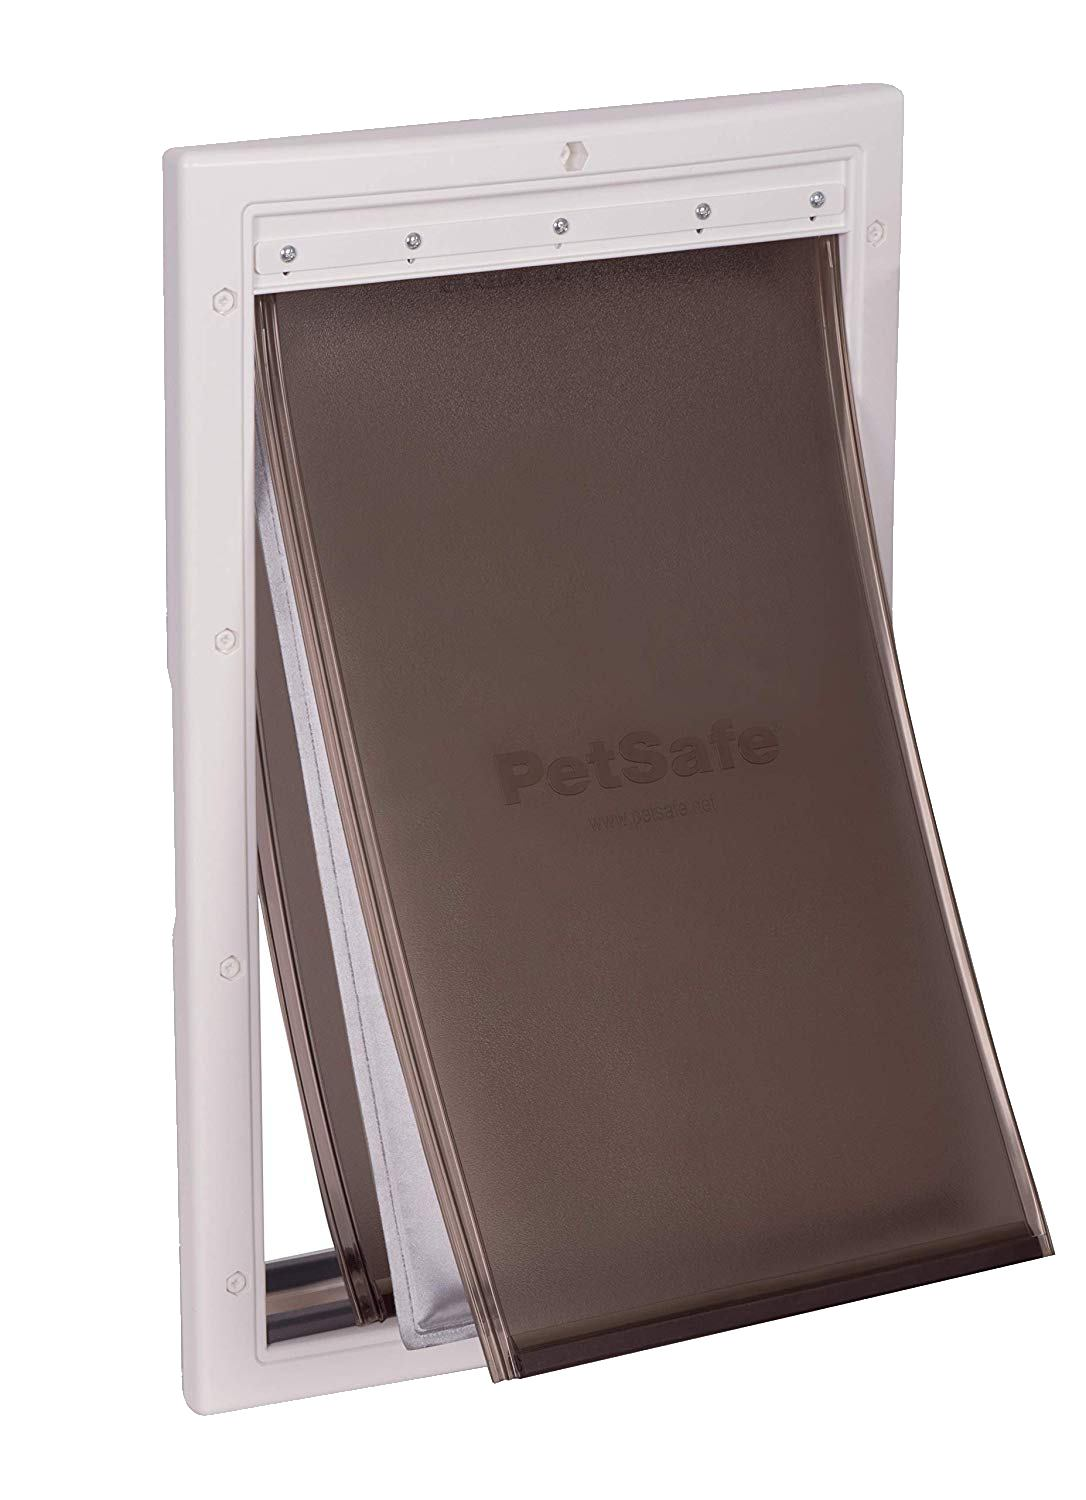 petsafe pet flap